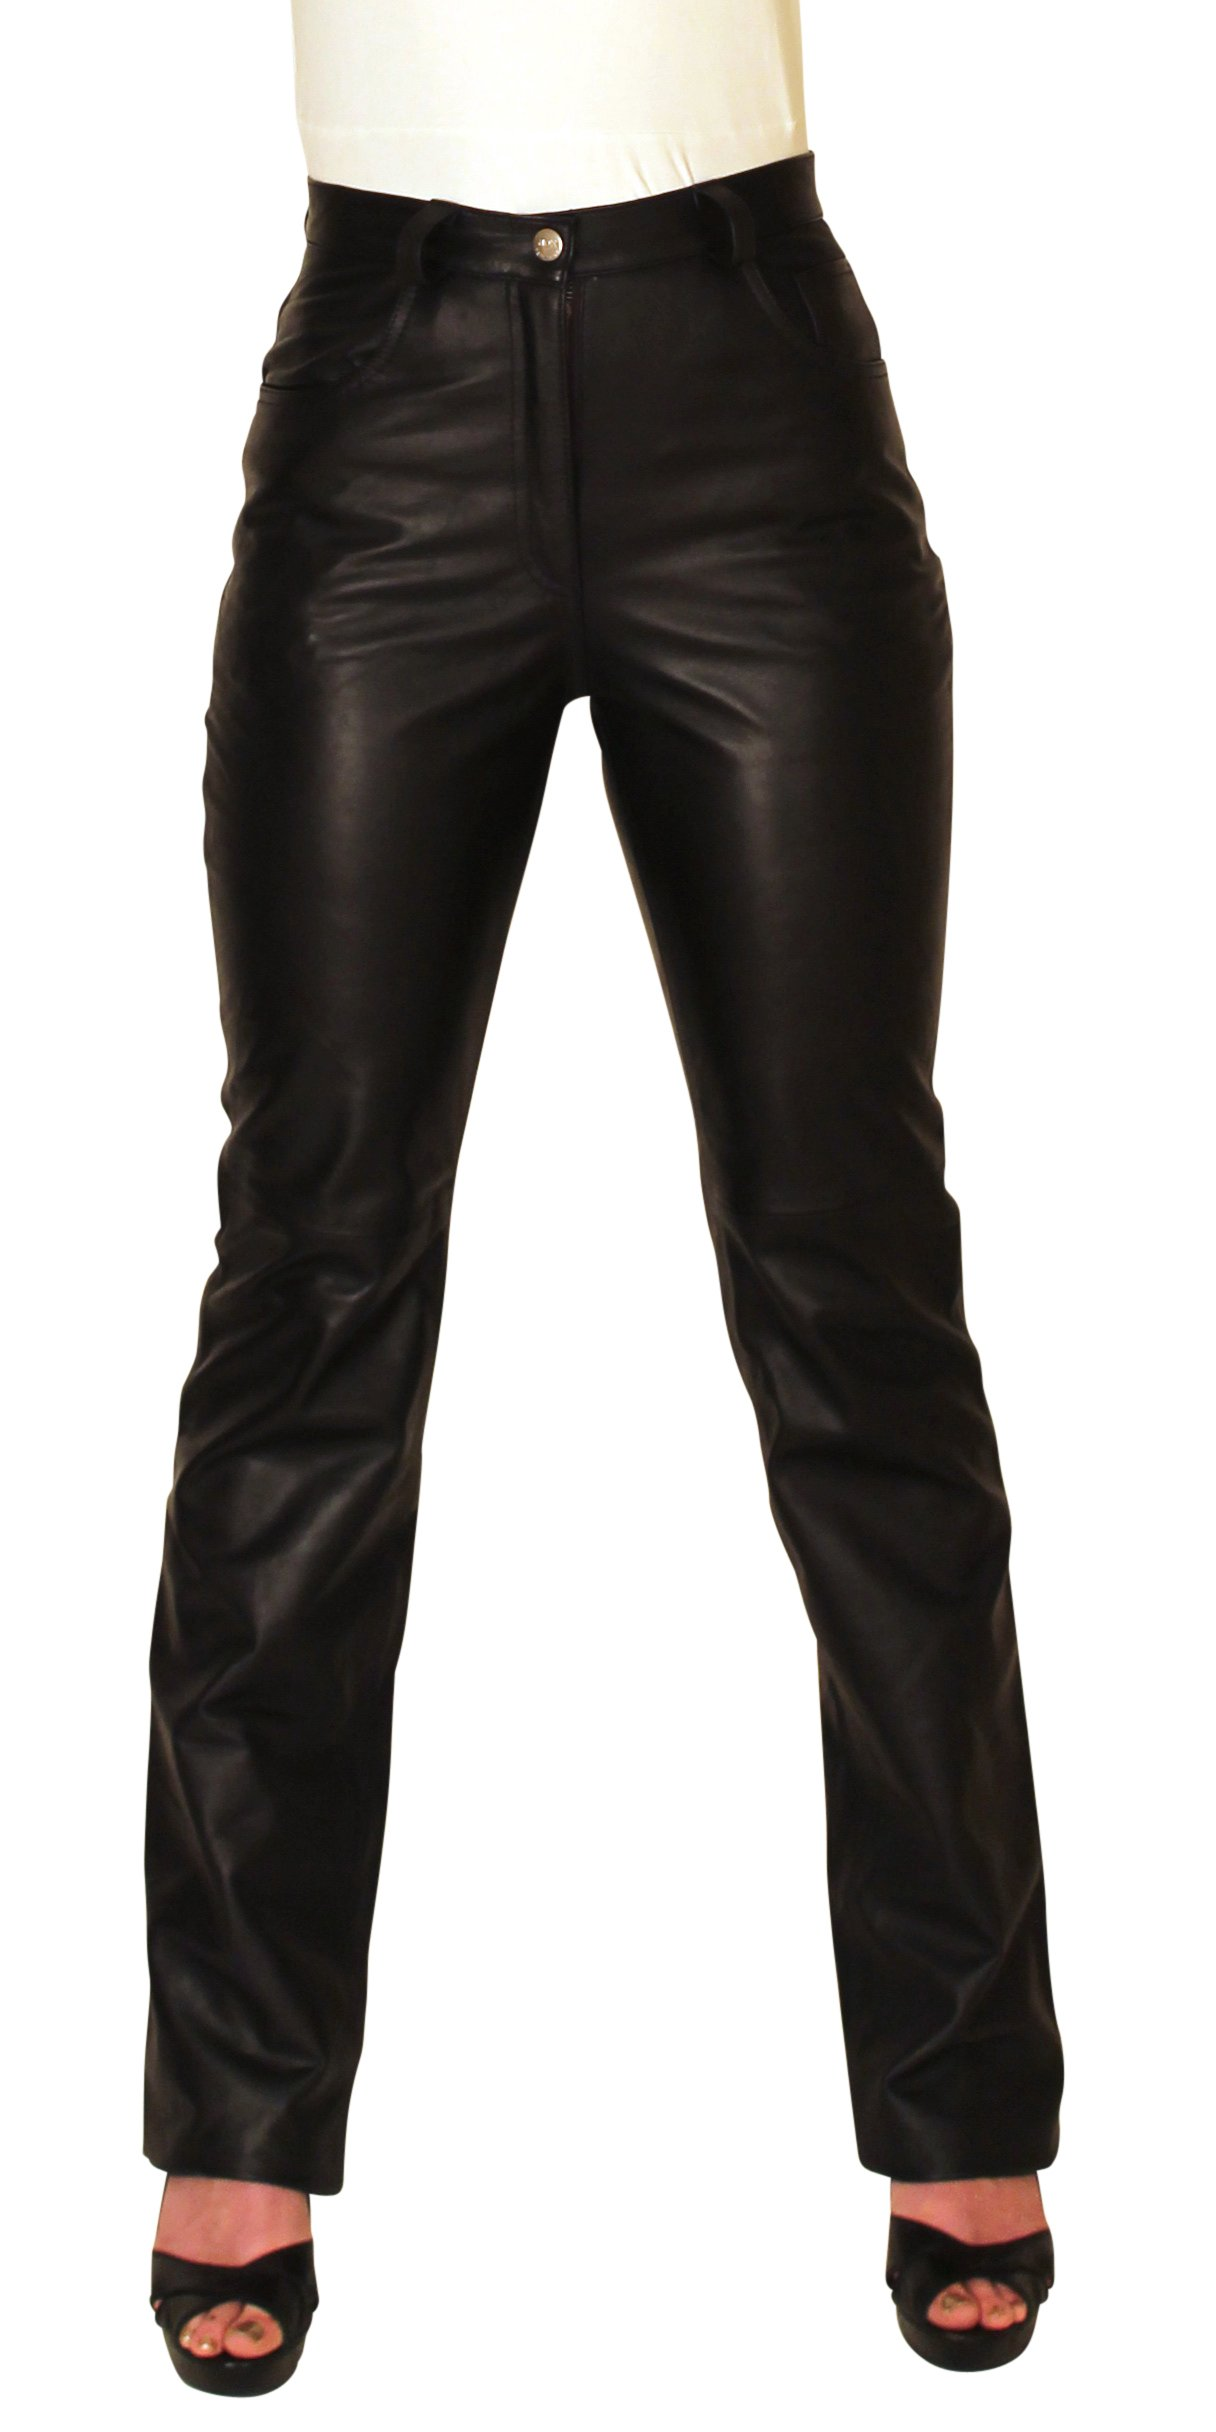 NDK New York Women's Lambskin Leather Pants Sexy Style Without Pockets